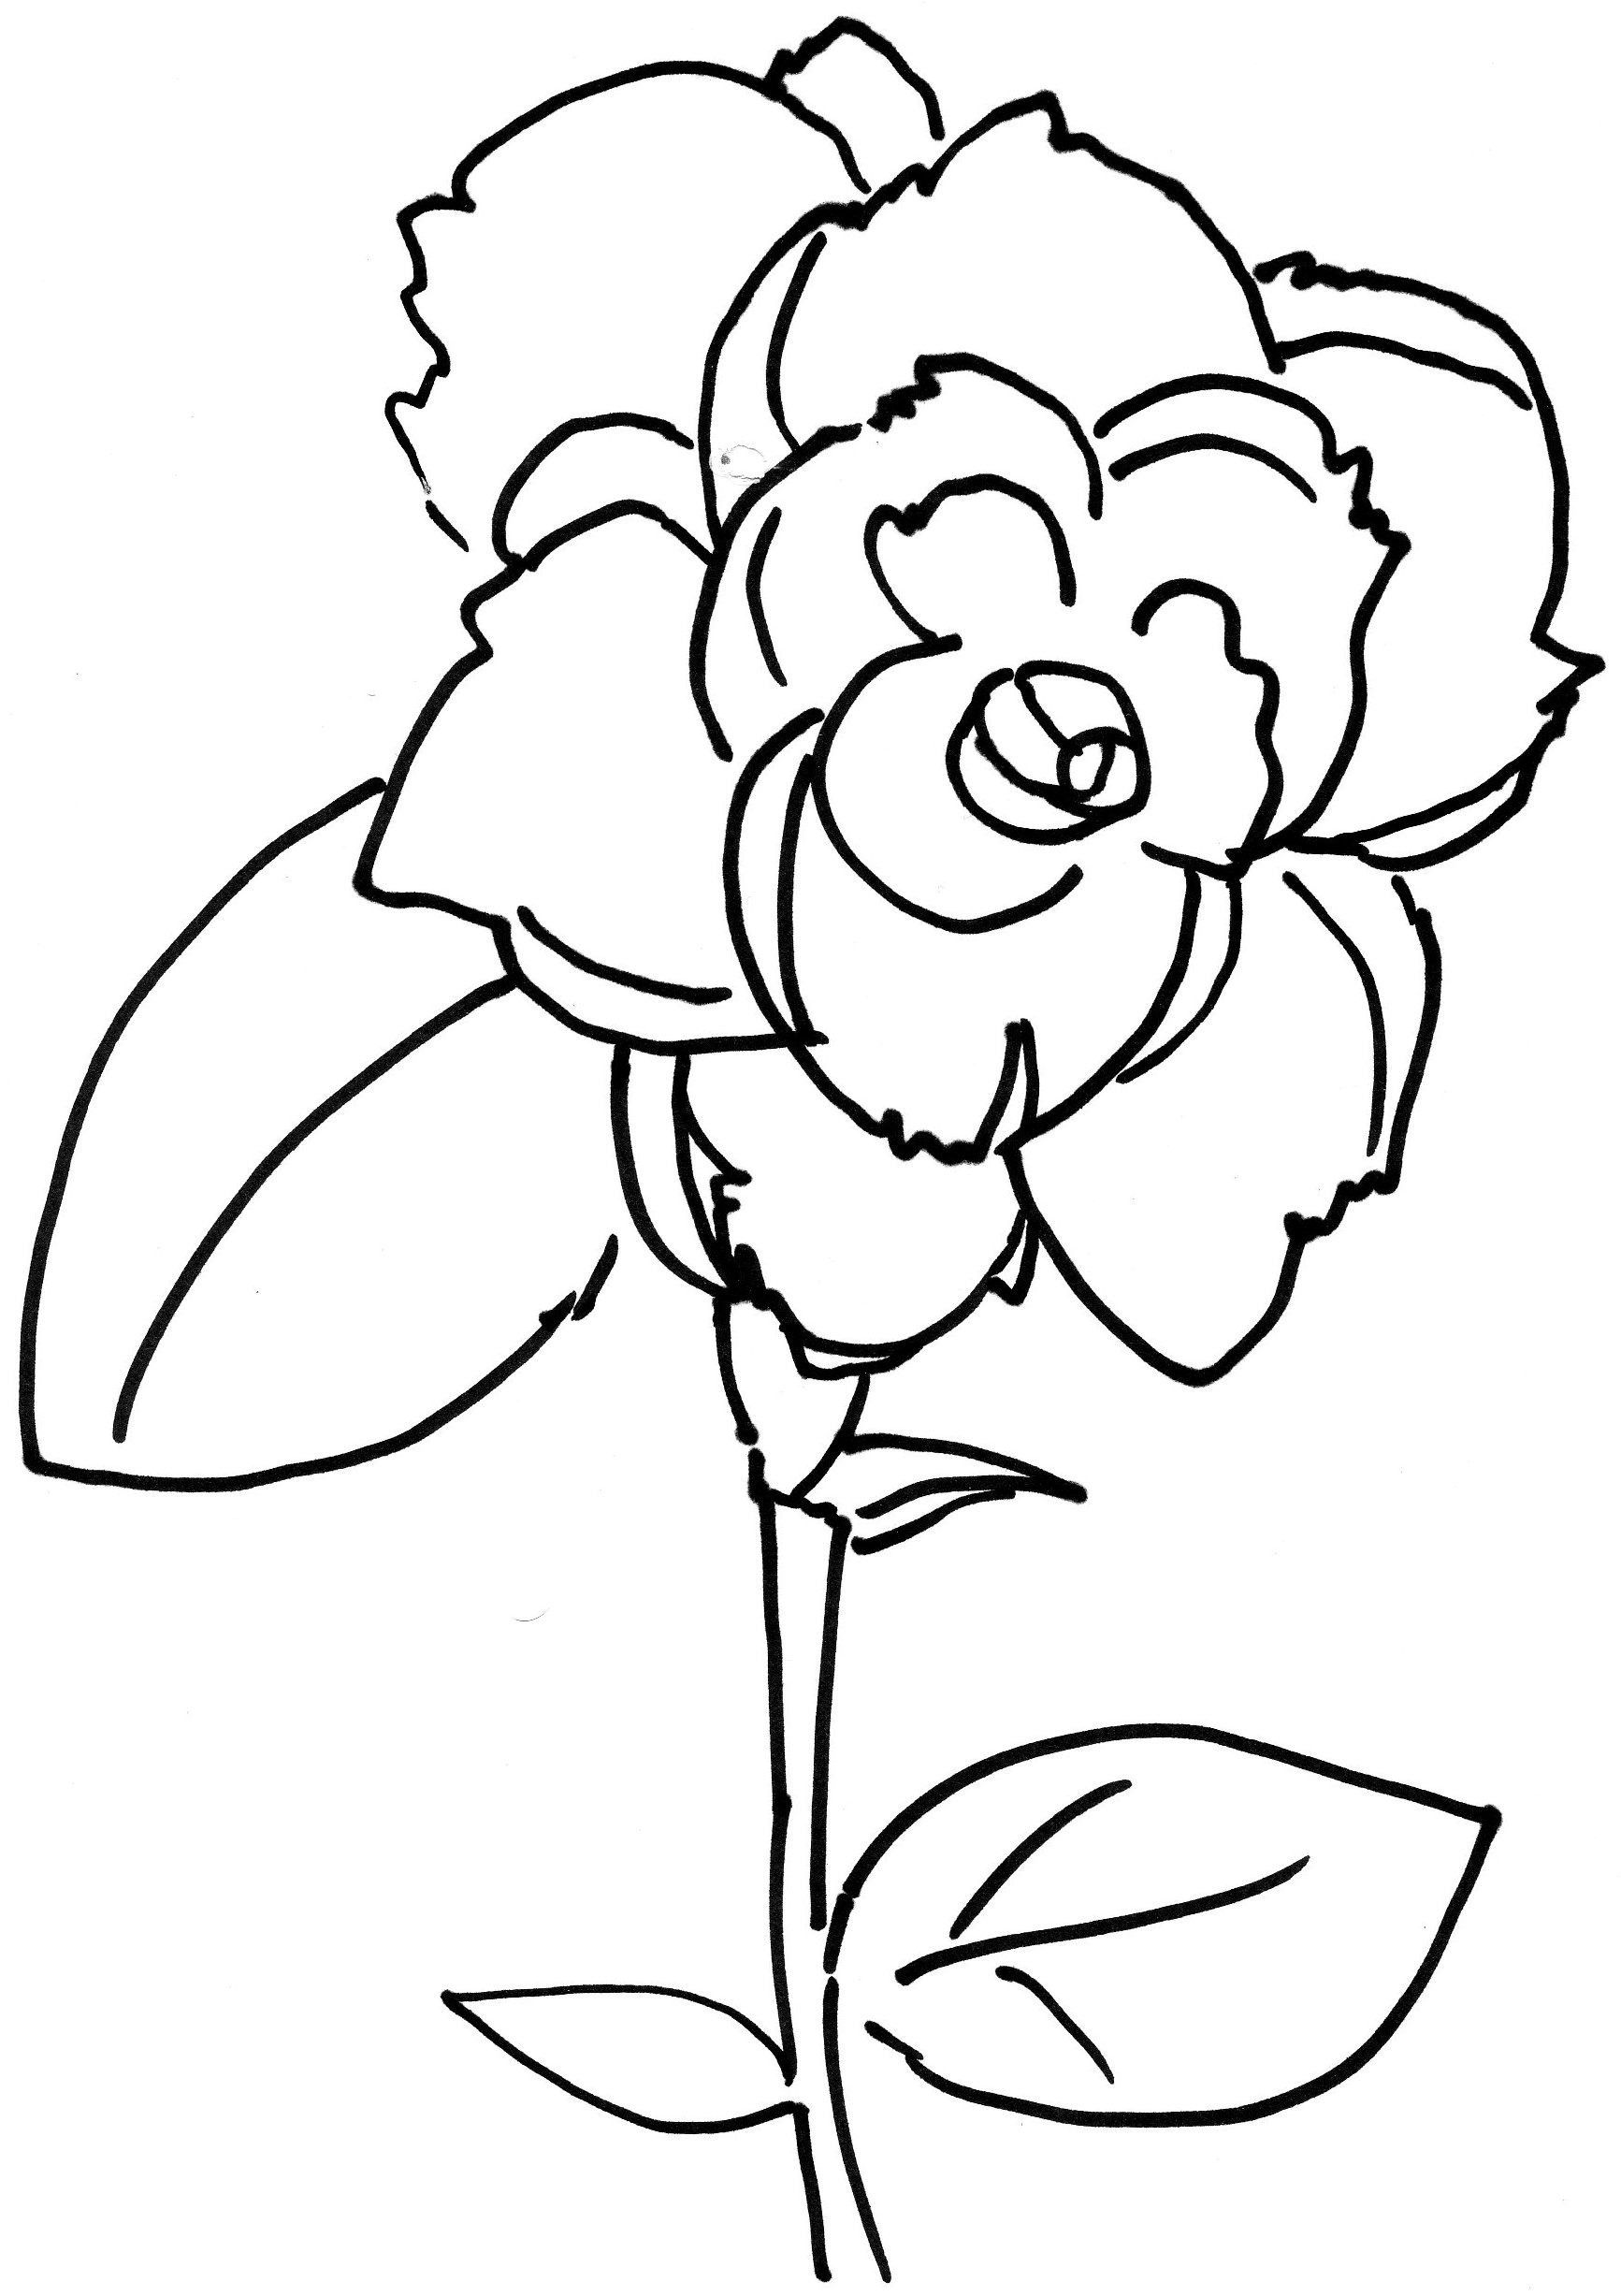 1733x2454 Marvelous Rose Bud Flower Coloring For Kids Unique Picture Of Page